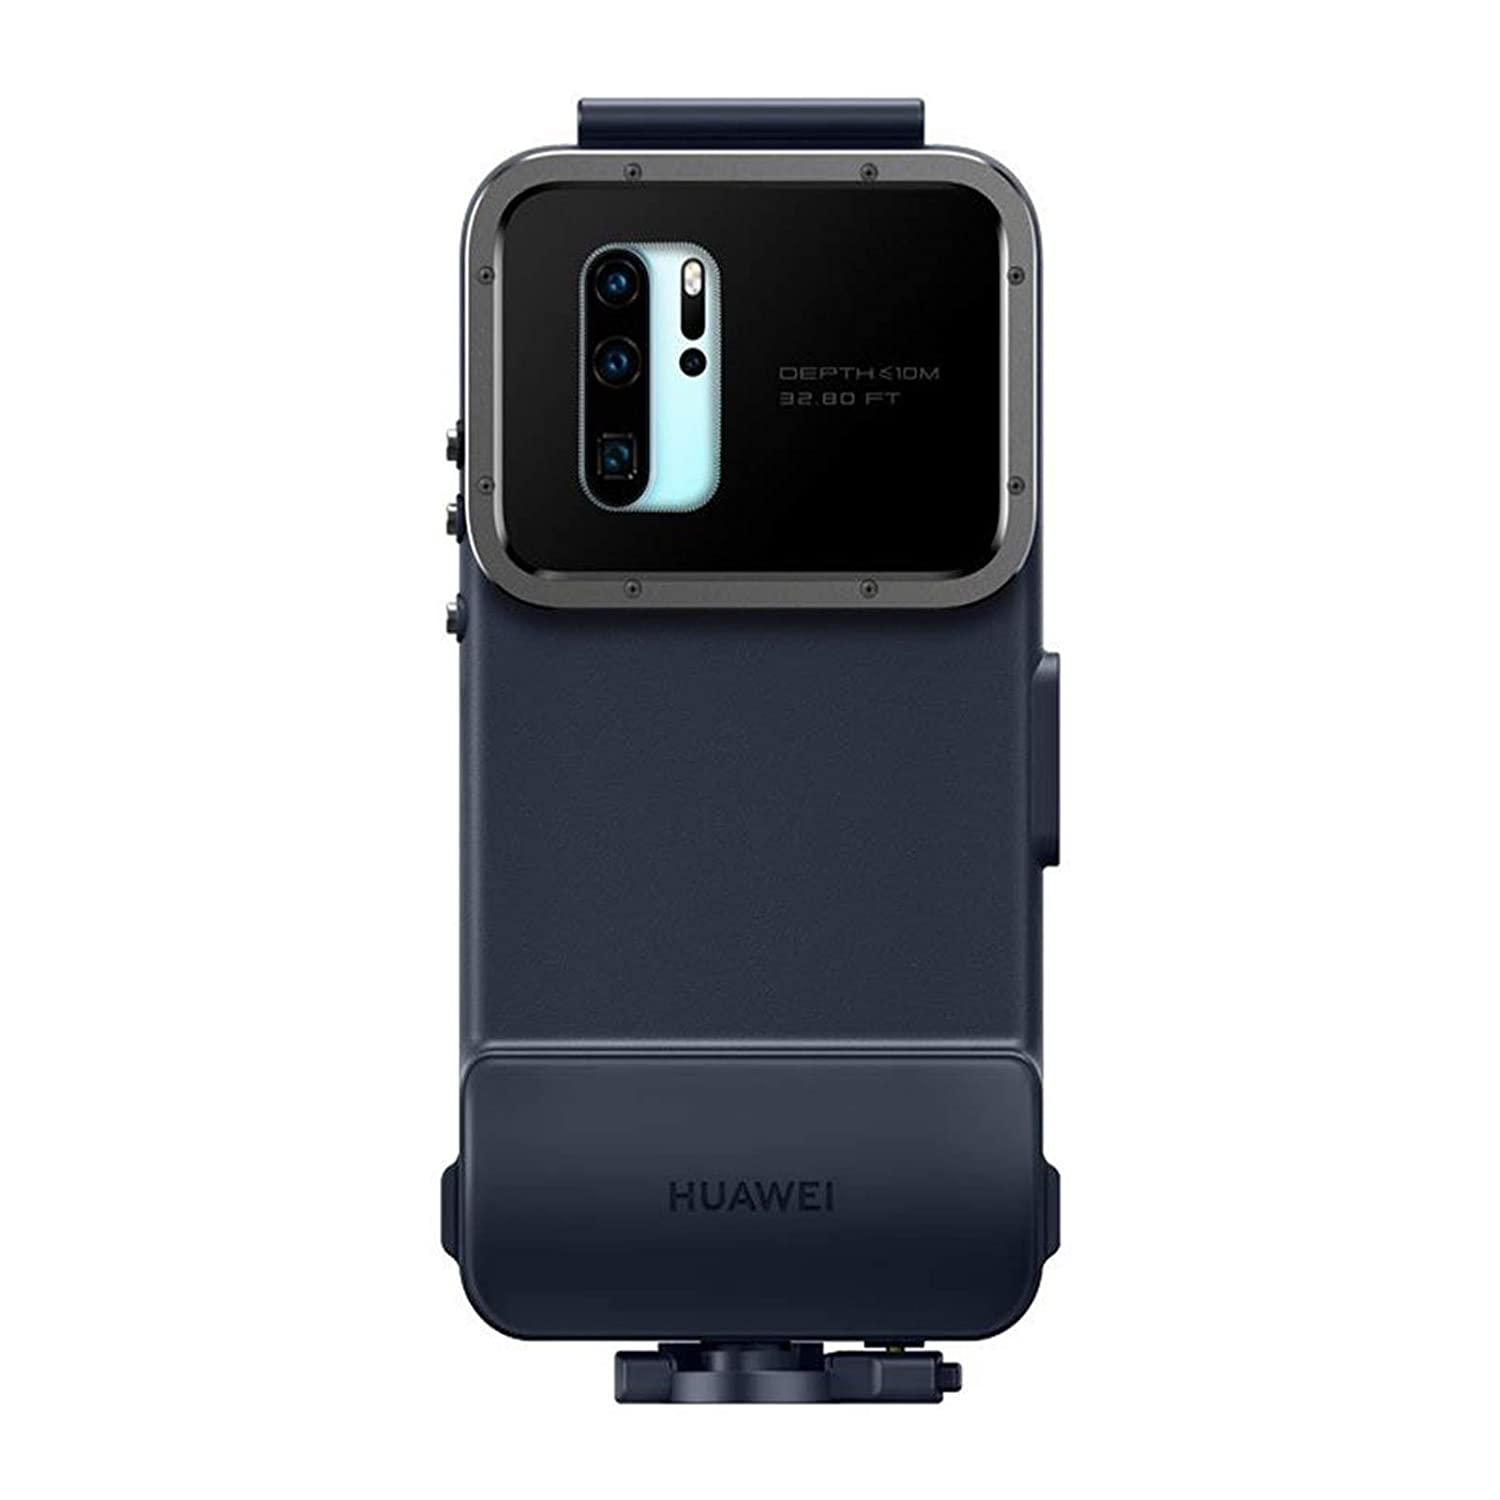 HUAWEI P30 Pro Snorkeling Case Cover, Blue, 51993089